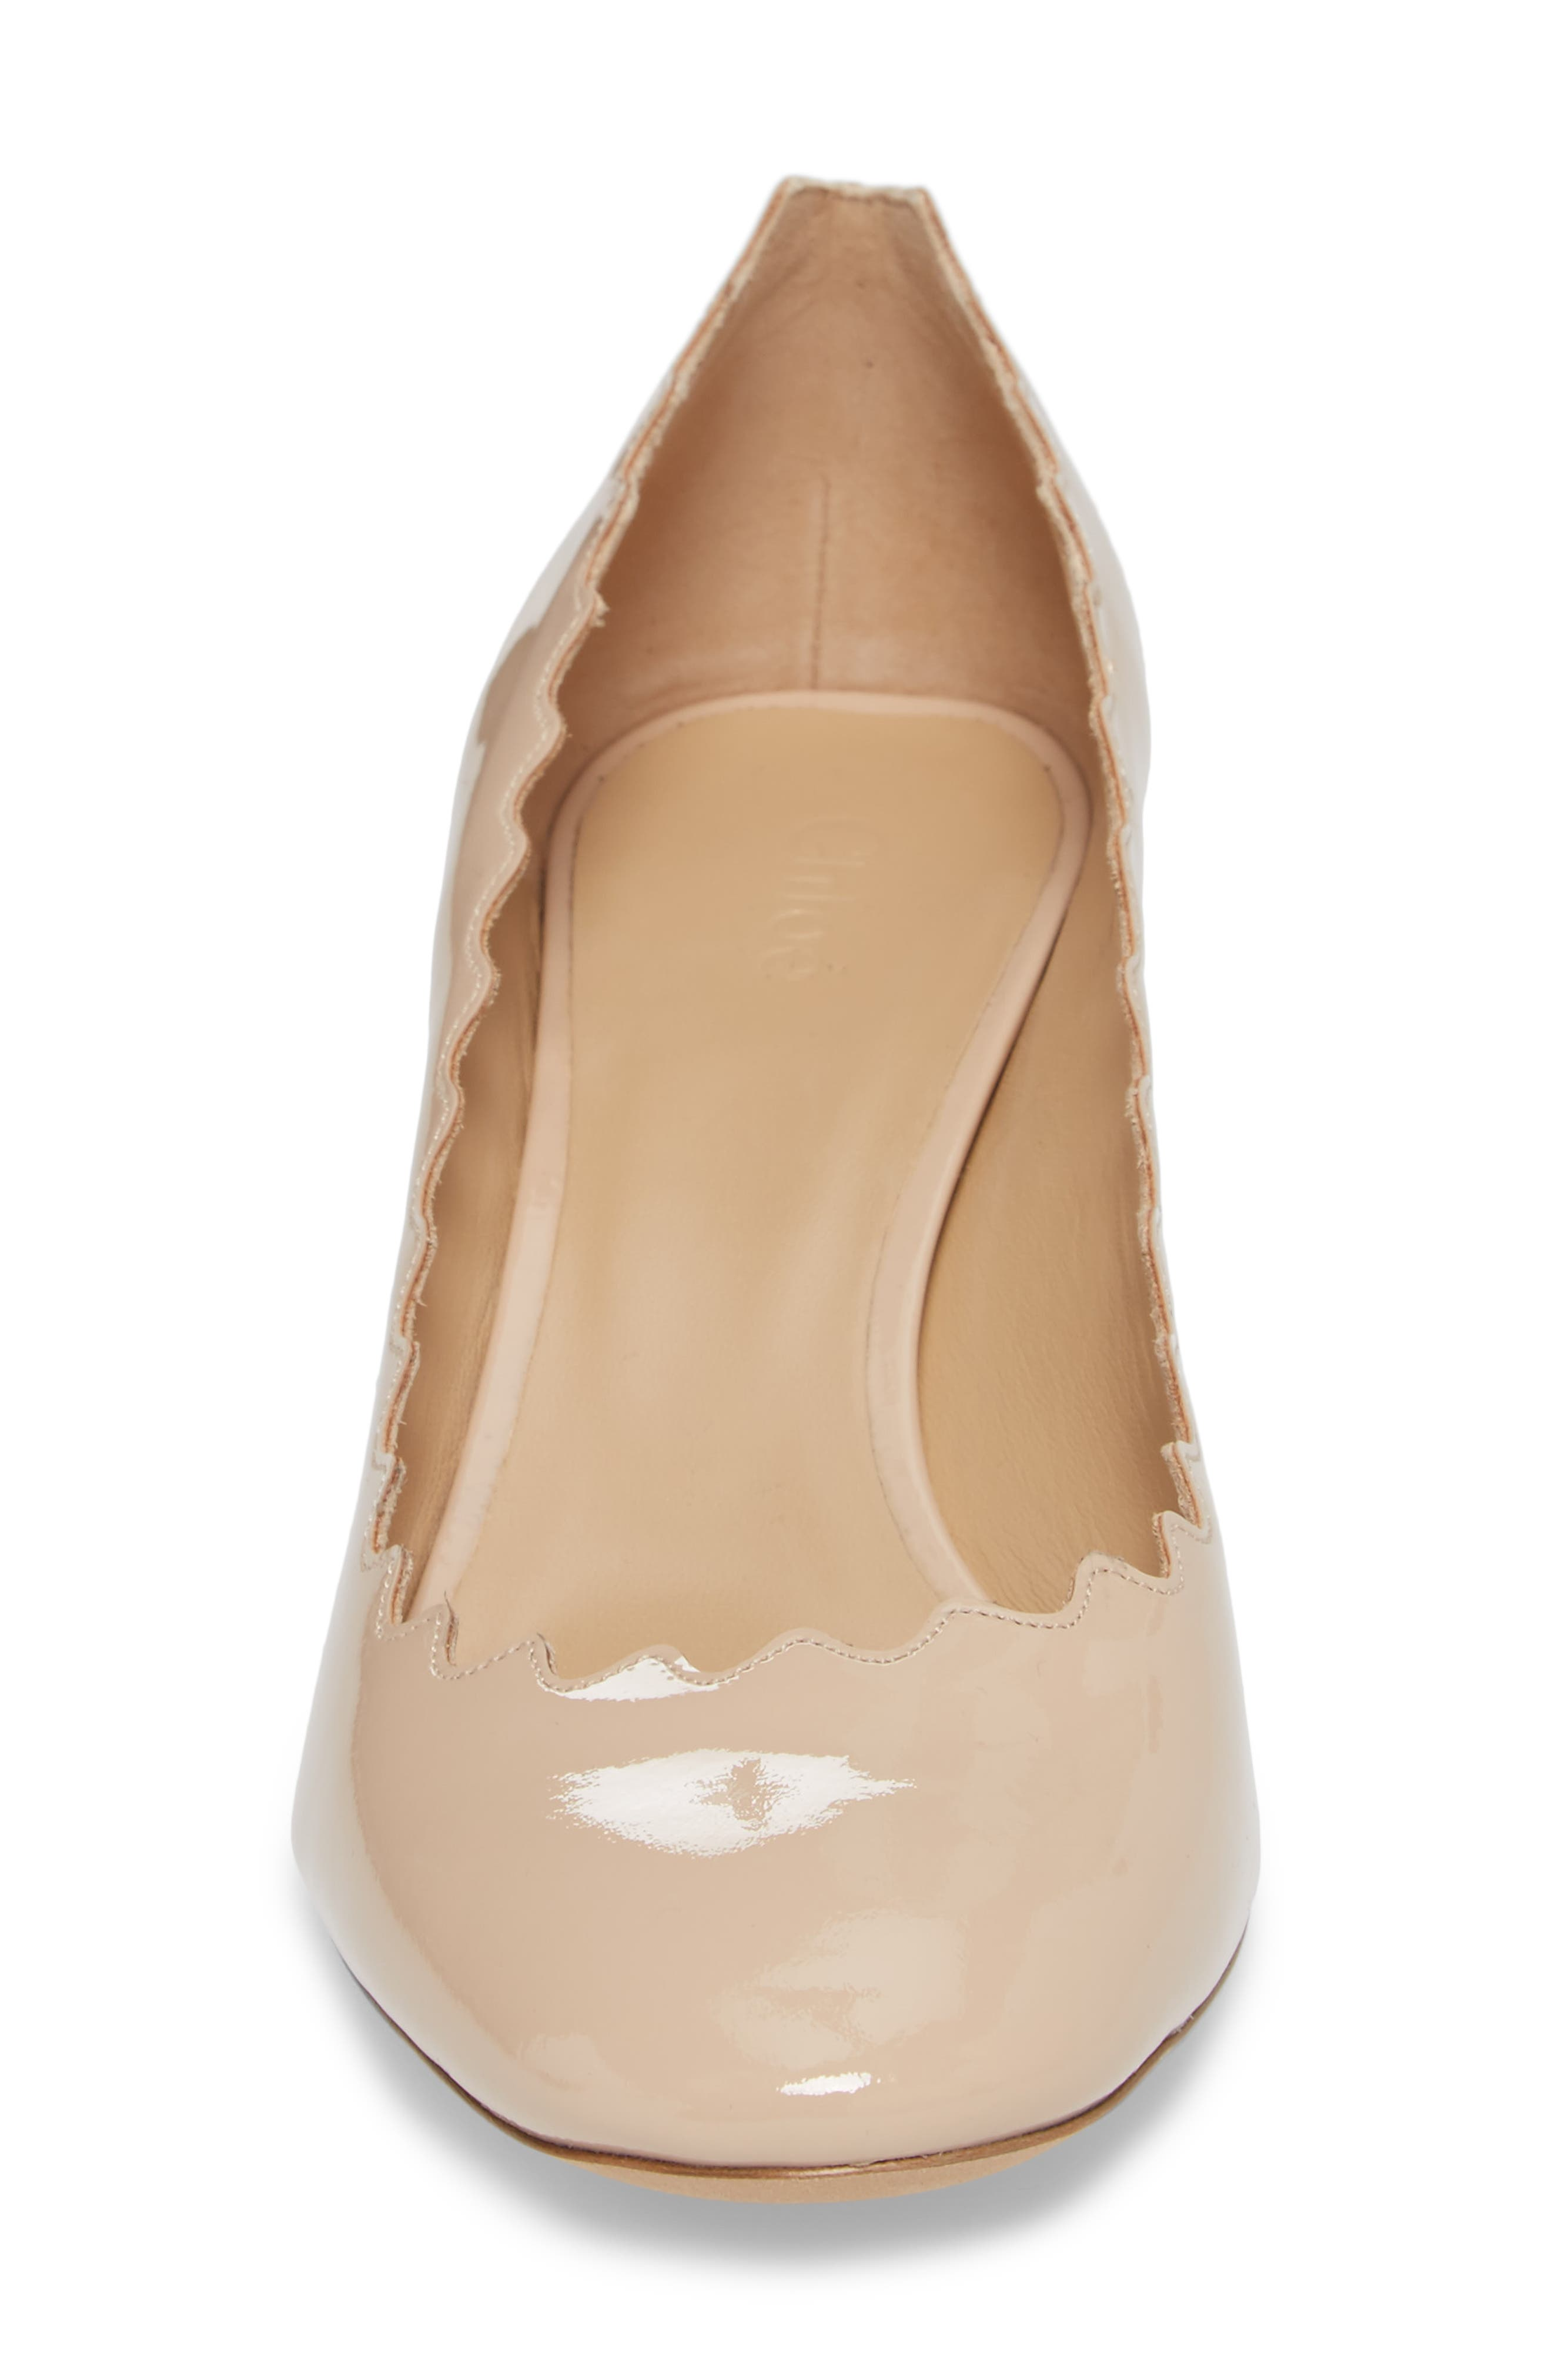 Lauren Pump,                             Alternate thumbnail 4, color,                             Mild Beige Patent